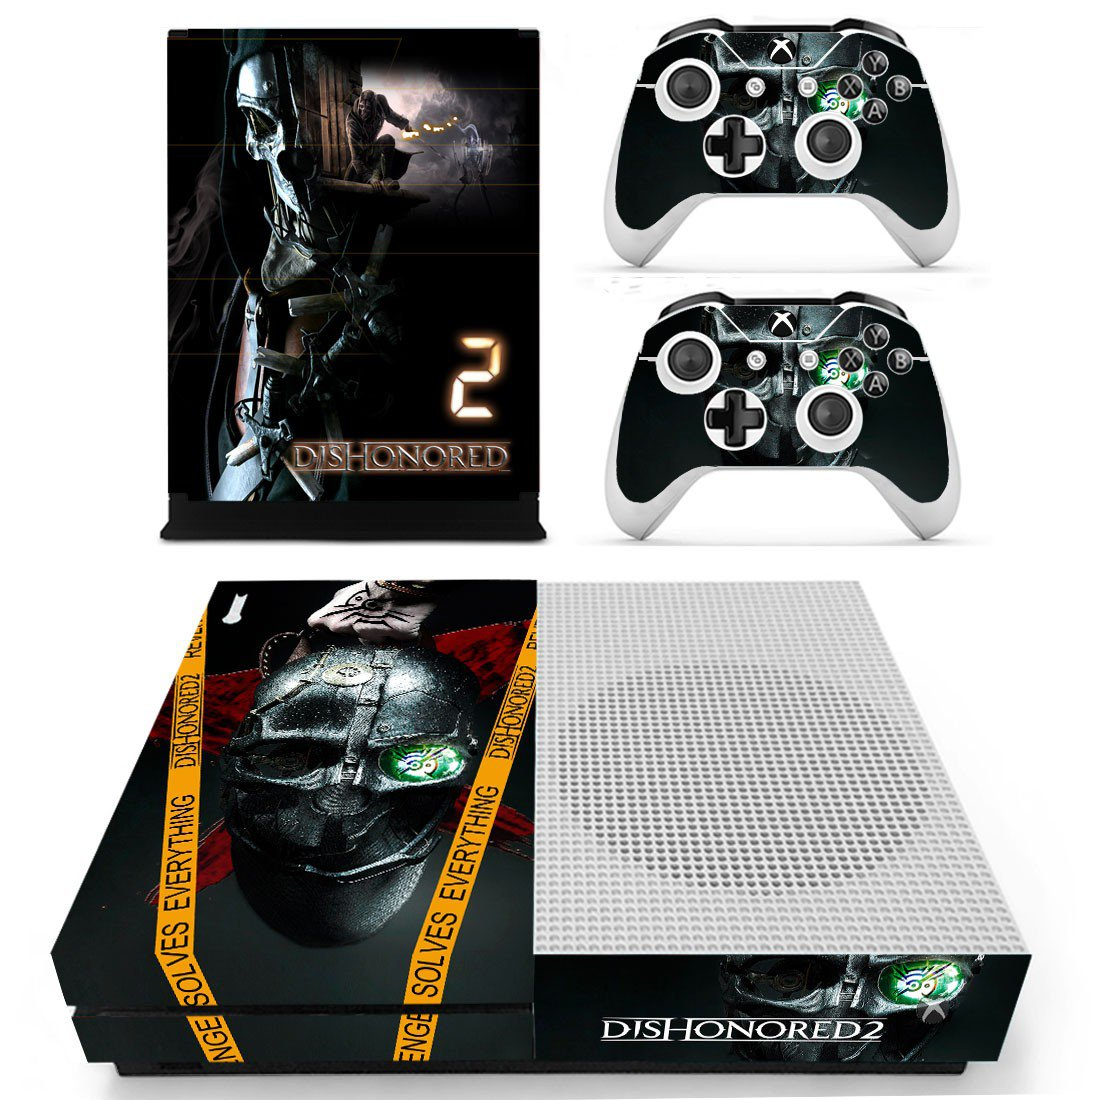 Dishonored2 skin decal for Xbox one S console and controllers